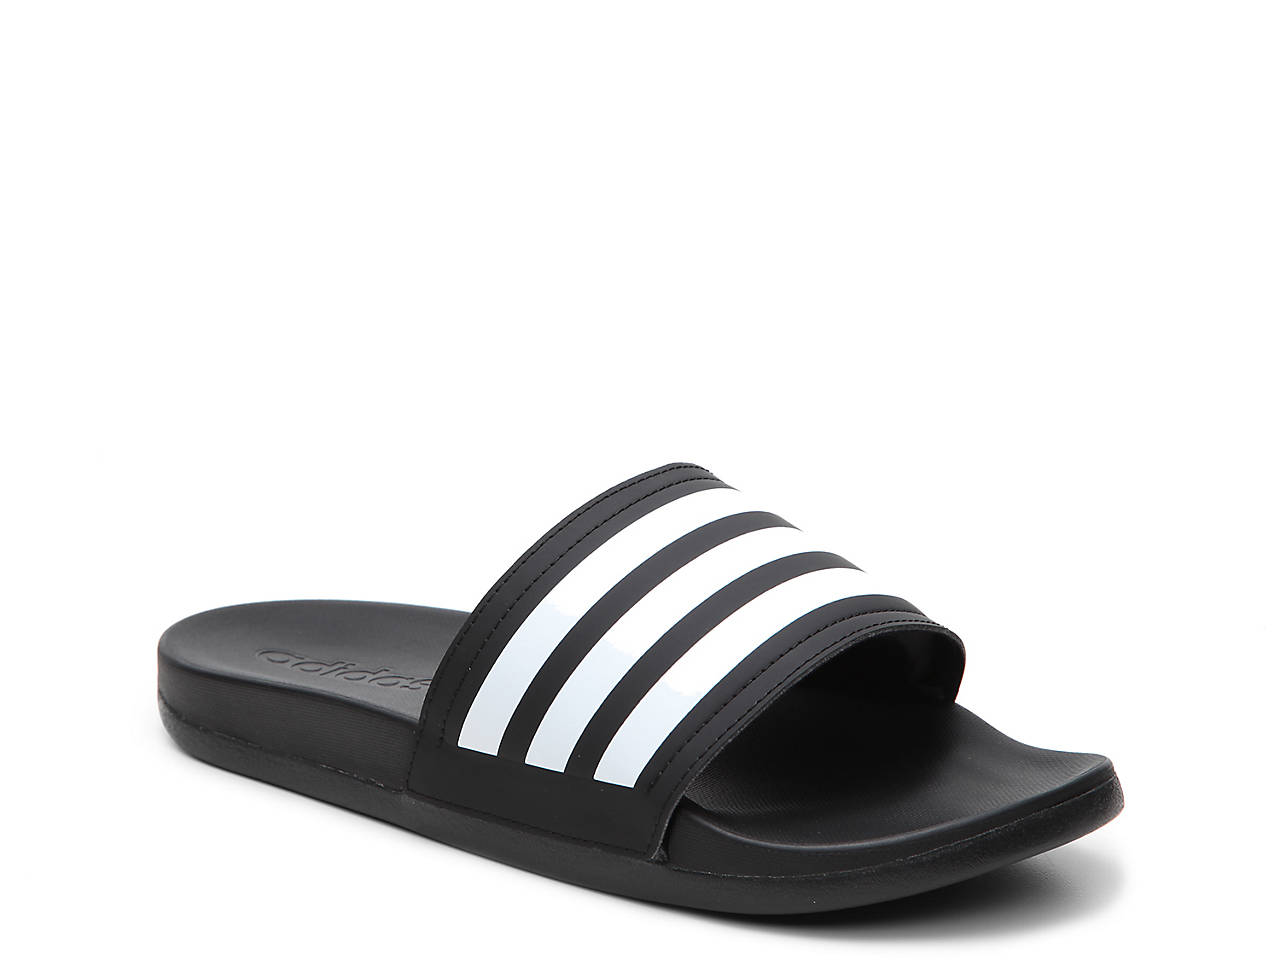 5a13419d7a457 adidas Adilette Cloudfoam Ultra Stripes Slide Sandal - Women s ...